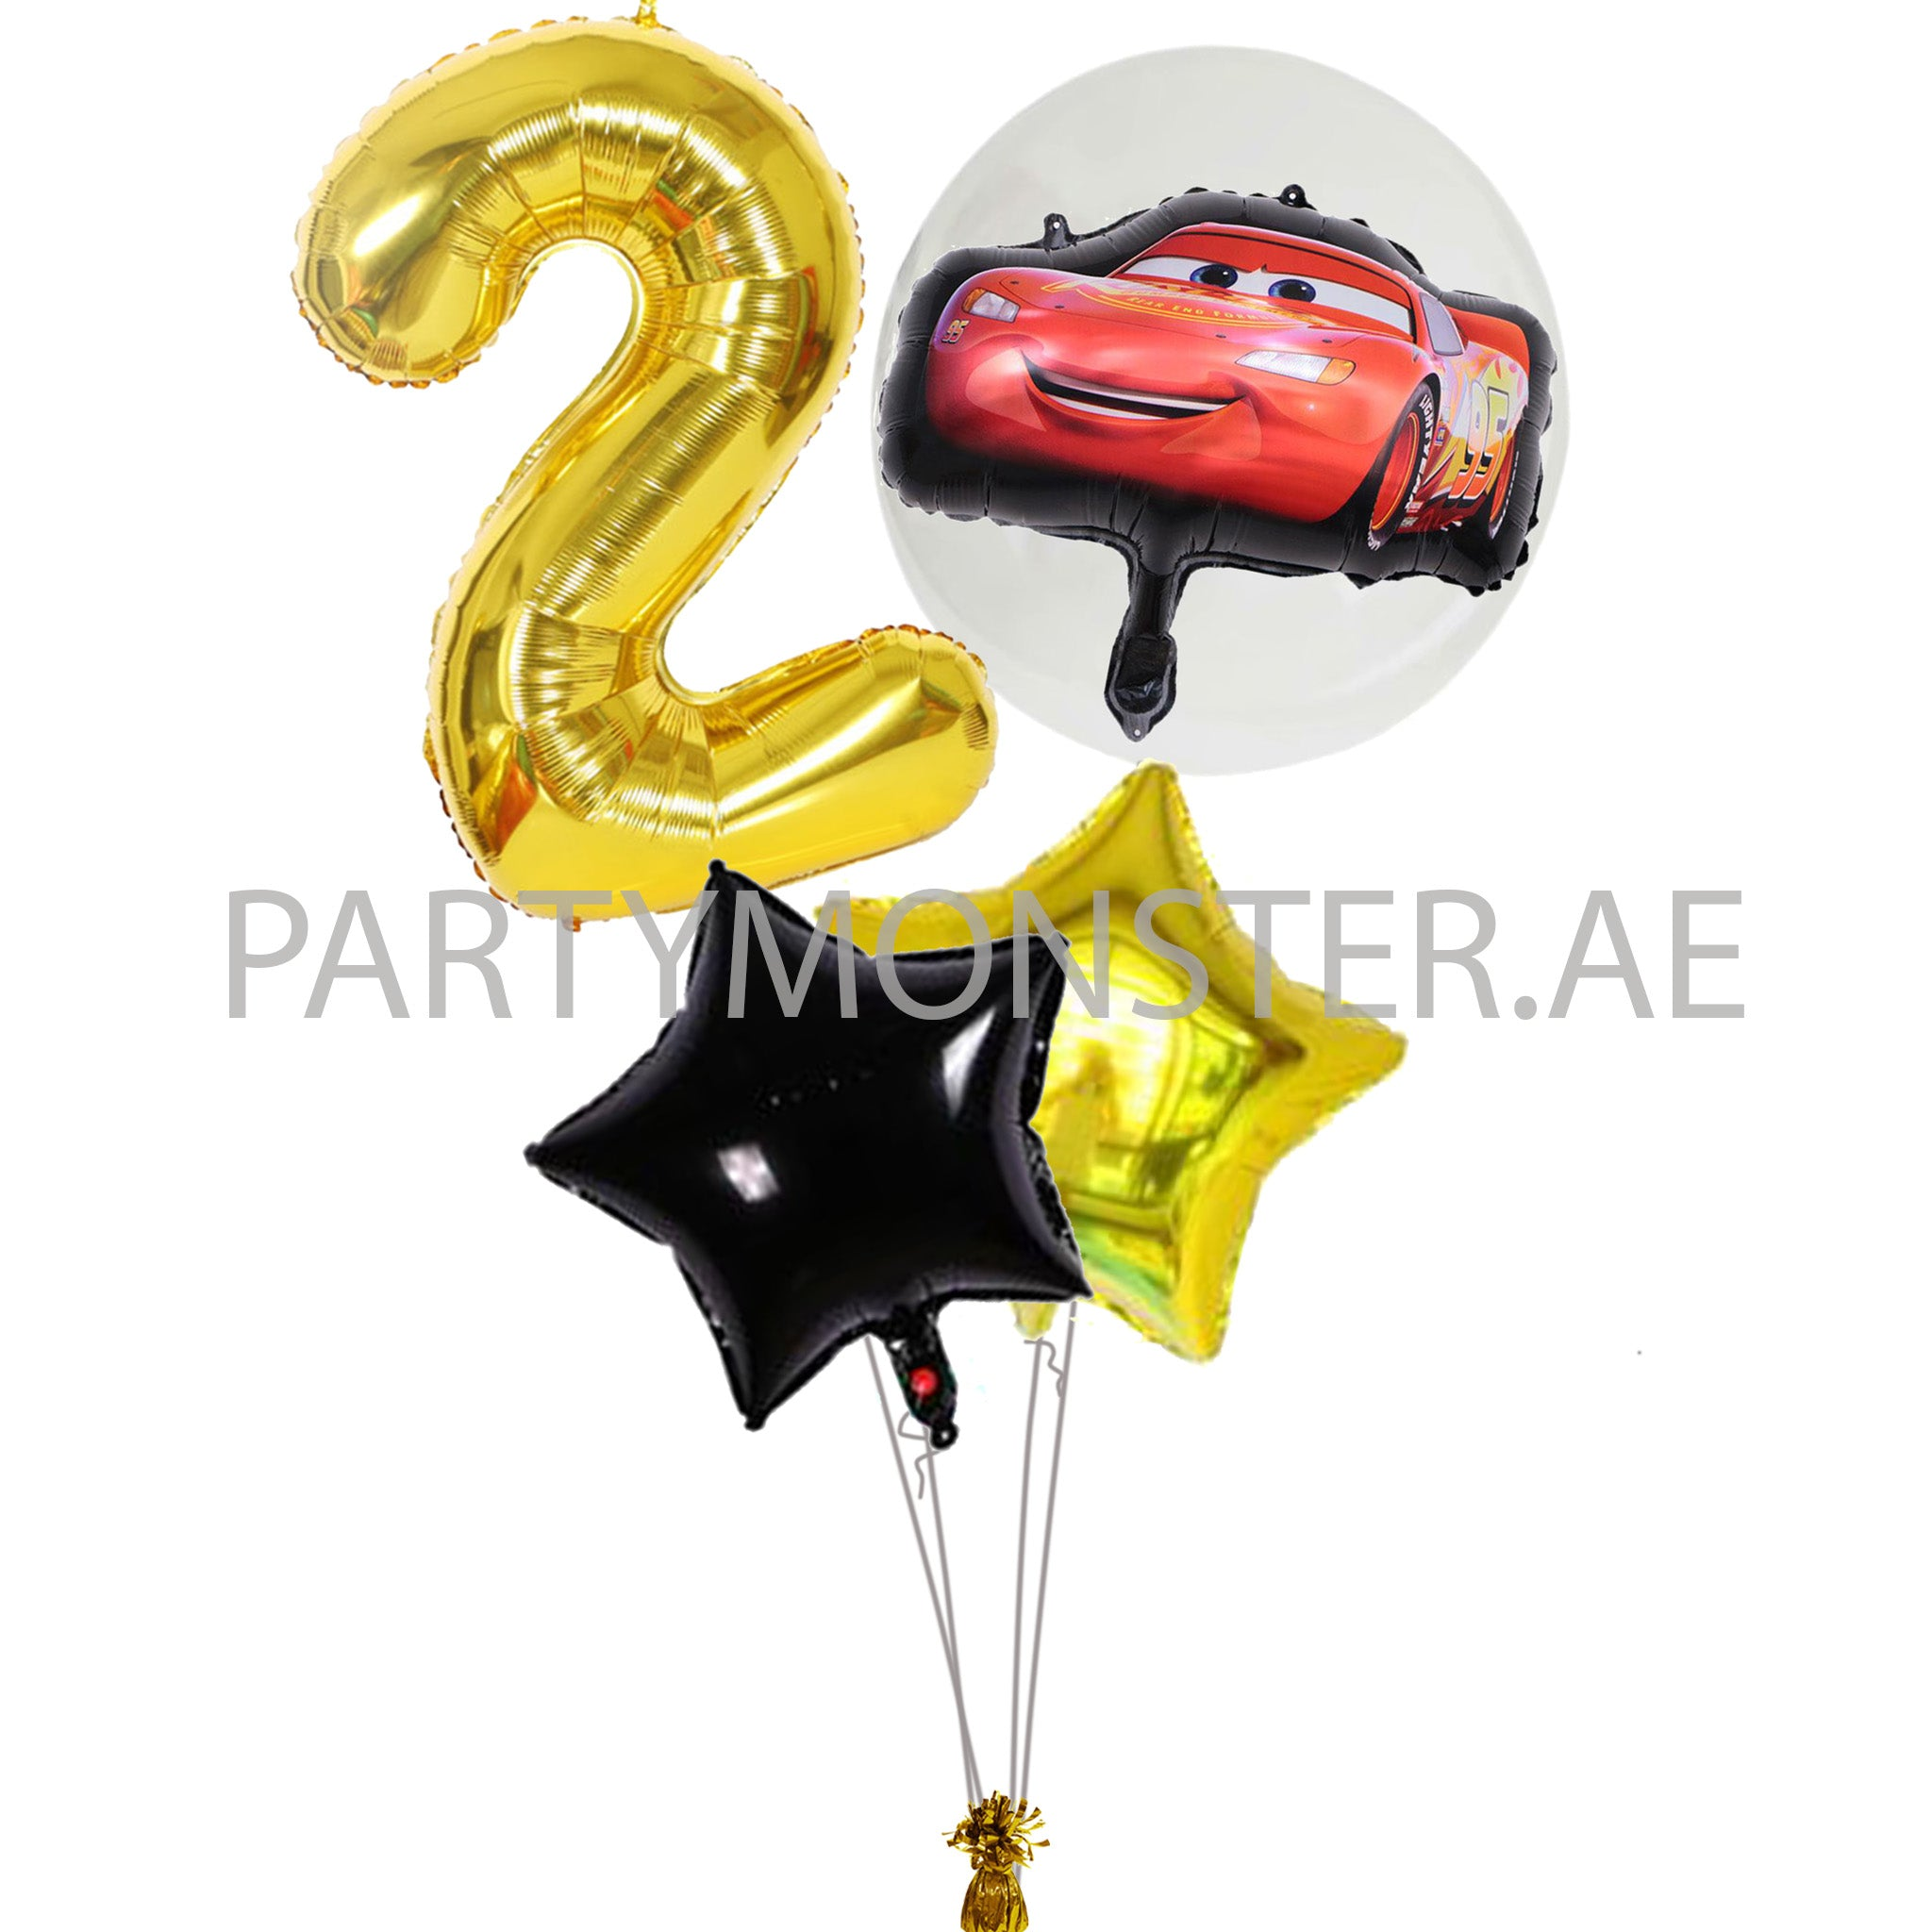 Cars themed any number balloons bouquet - PartyMonster.ae